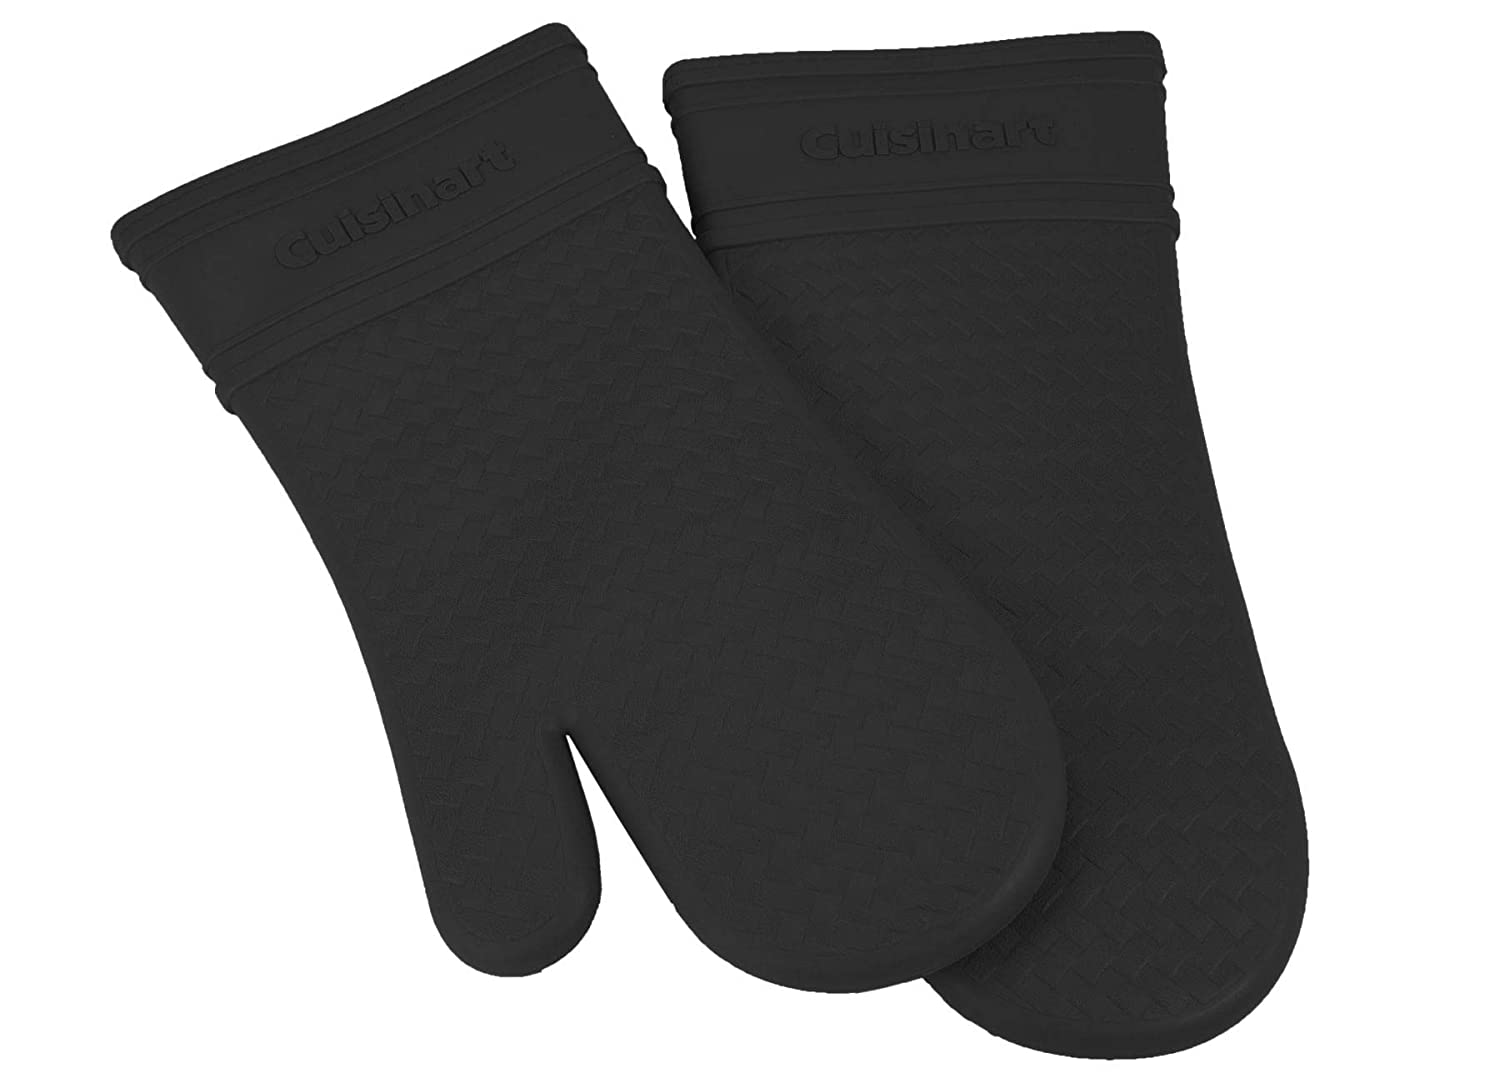 Cuisinart Silicone Oven Mitts, 2pk - Heat Resistant Silicone Oven Gloves to Safely Handle Hot Cookware Items - Flexible, Waterproof Silicone Gloves with Non-Slip Grip and Insulated Pockets - Black